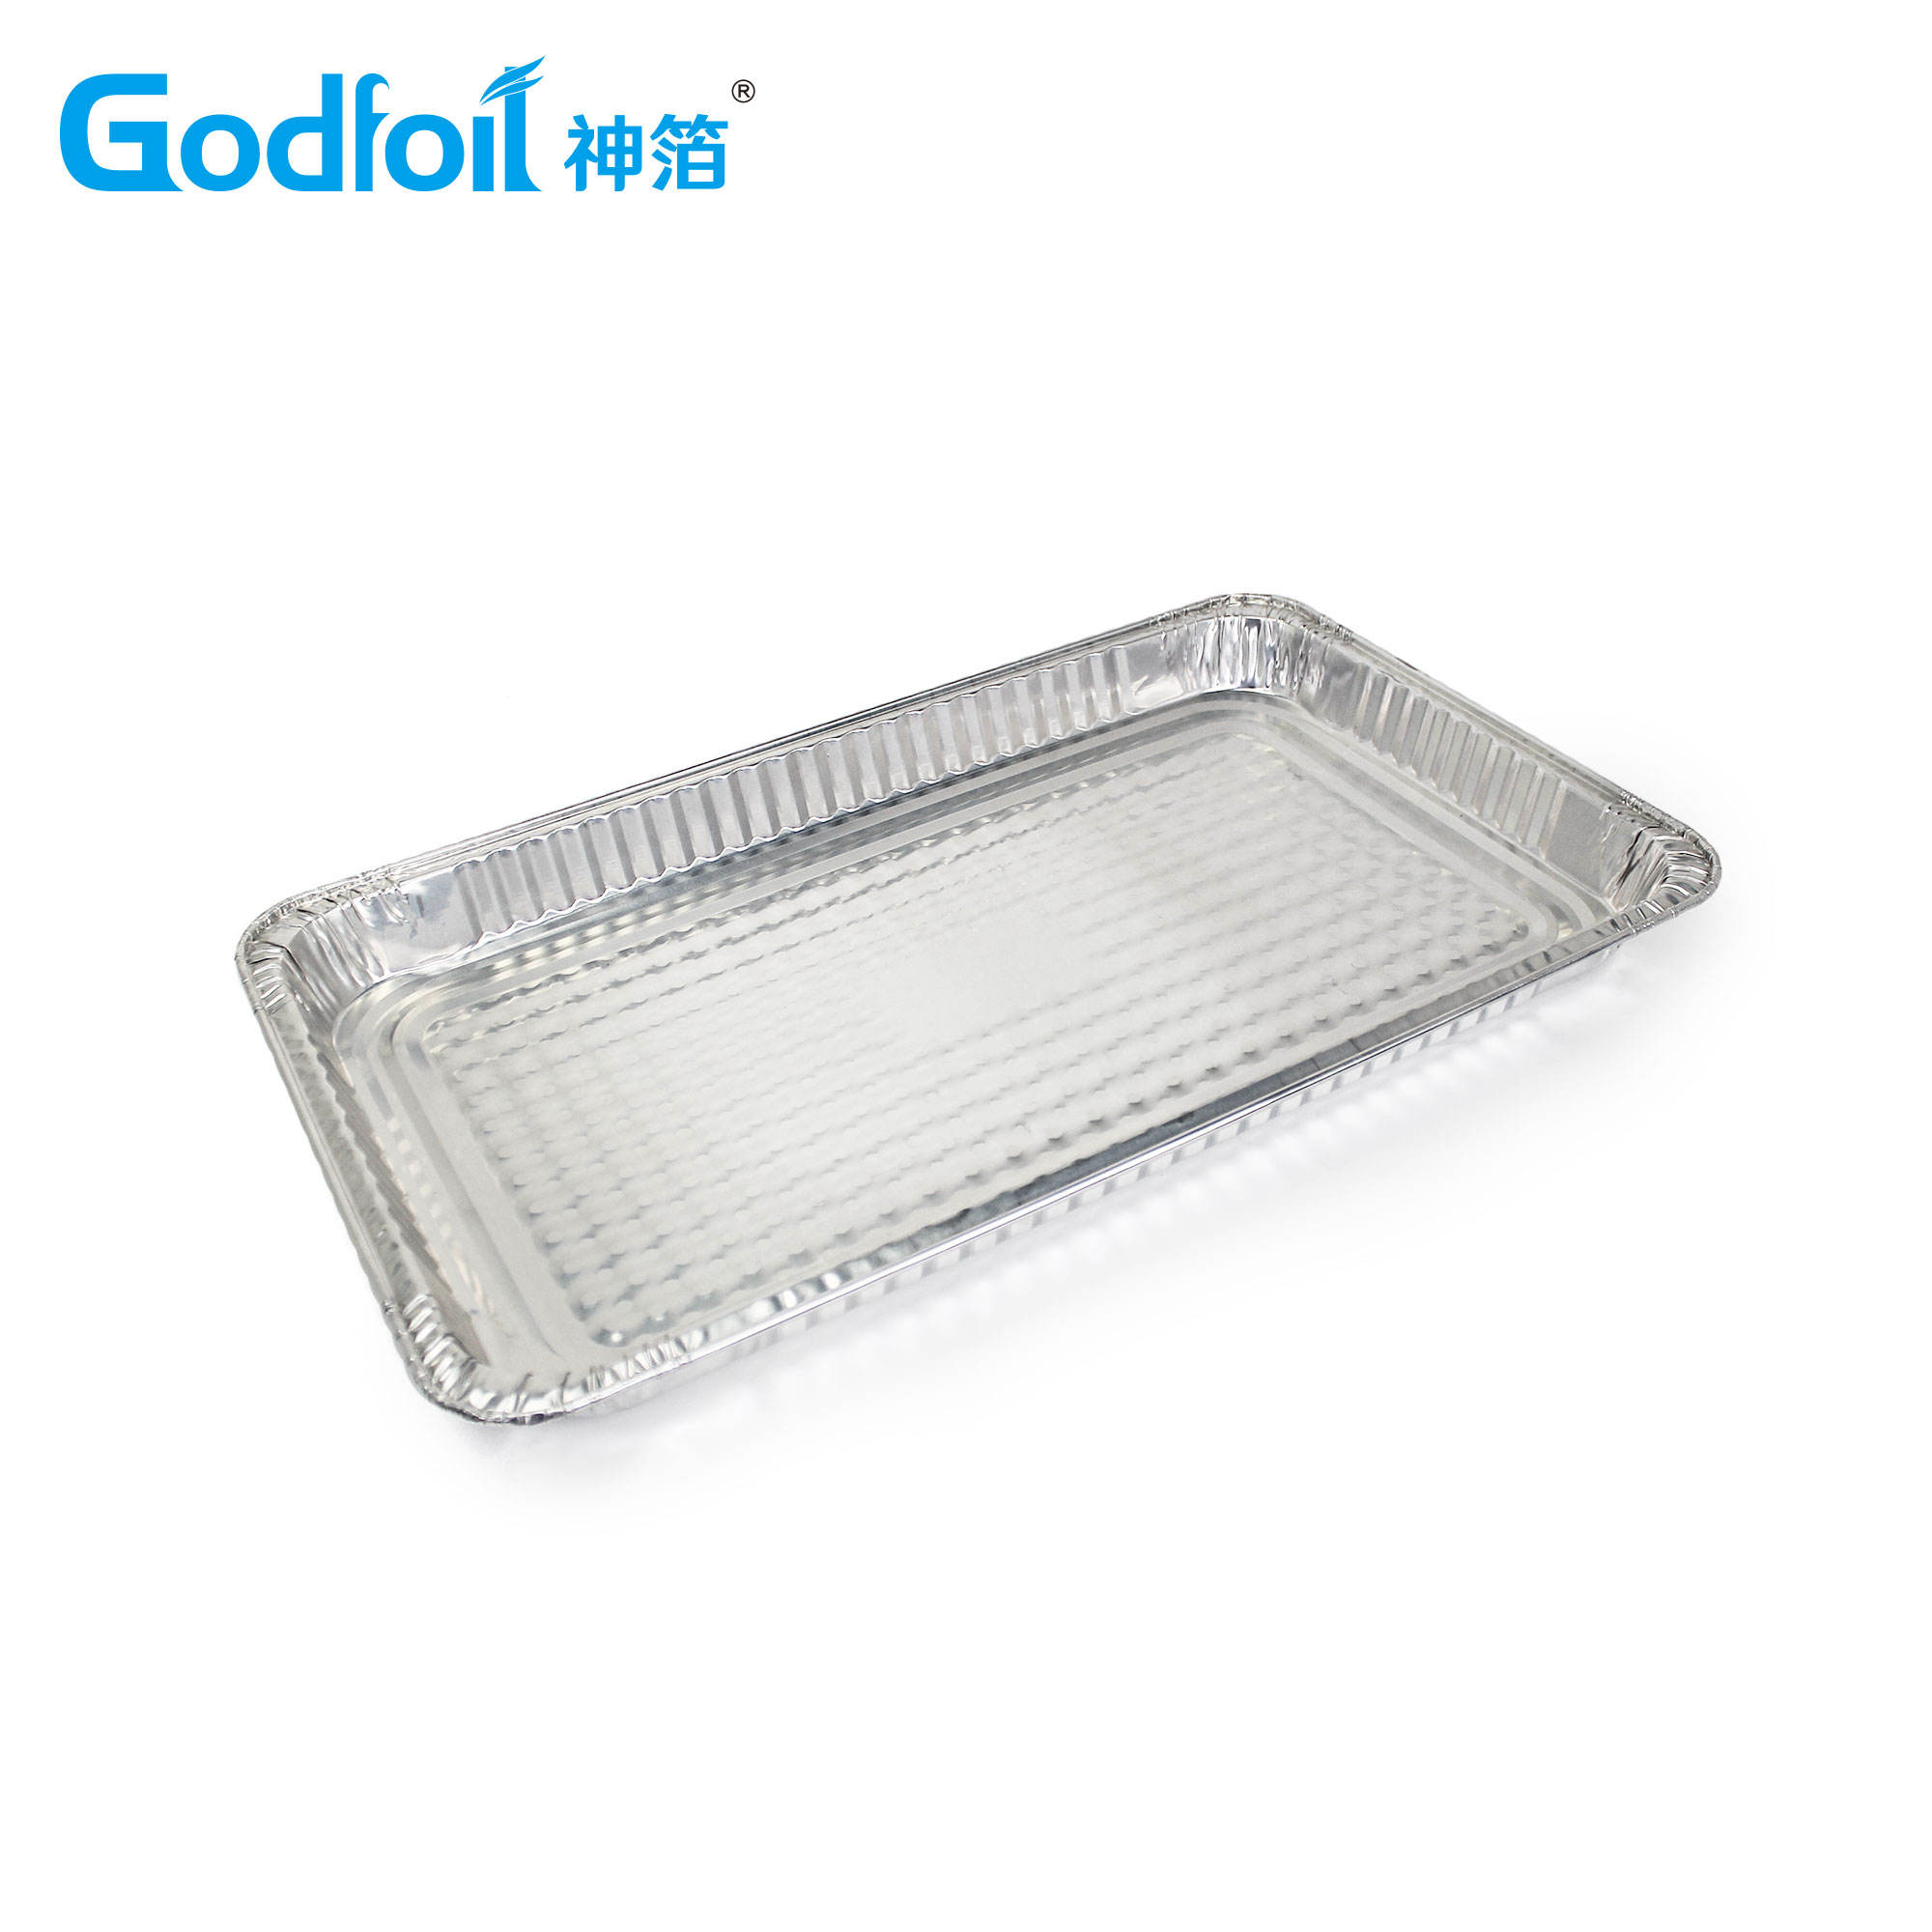 Full Size Steam Table Deep Aluminum Foil Table Pan Novelis 460 Full-Size Deep Steam Aluminum Foil Containers